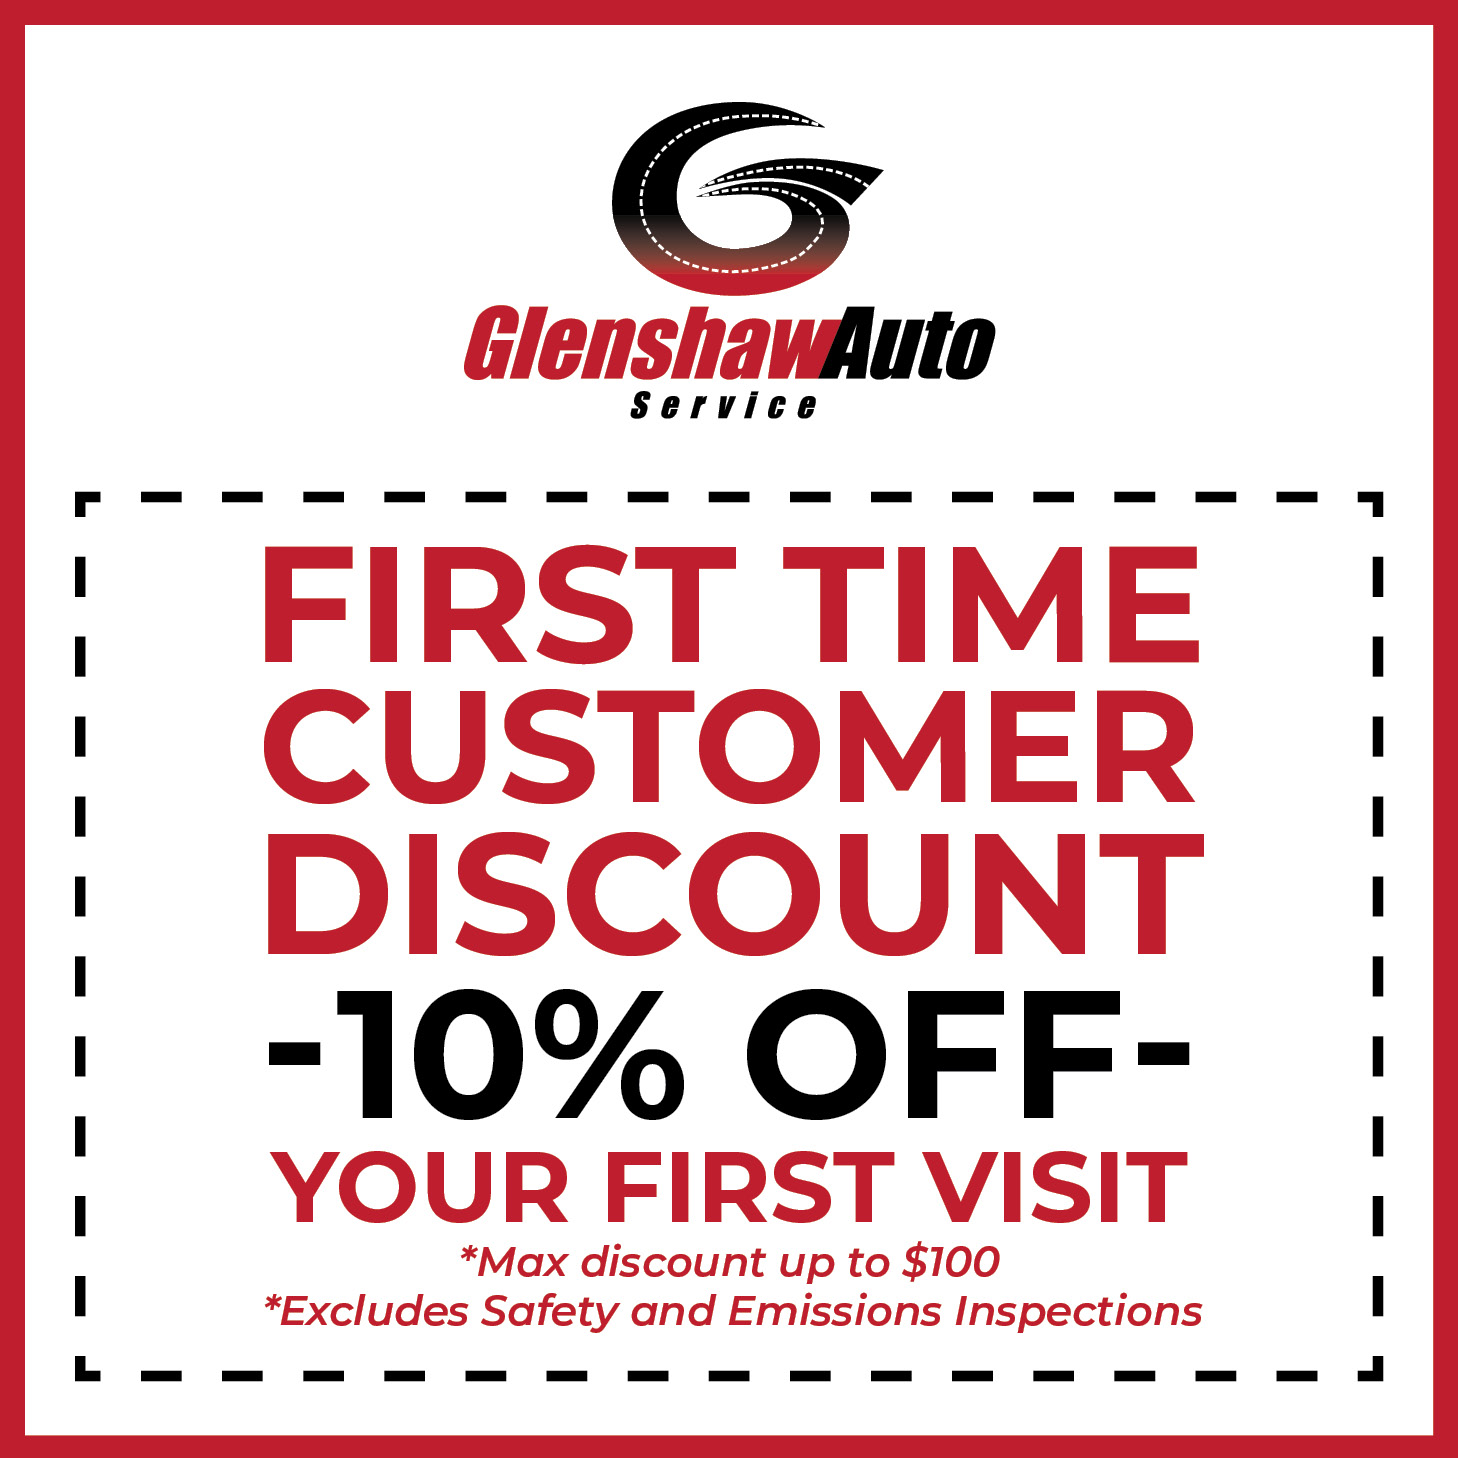 Graphic for the First Time Customer Discount